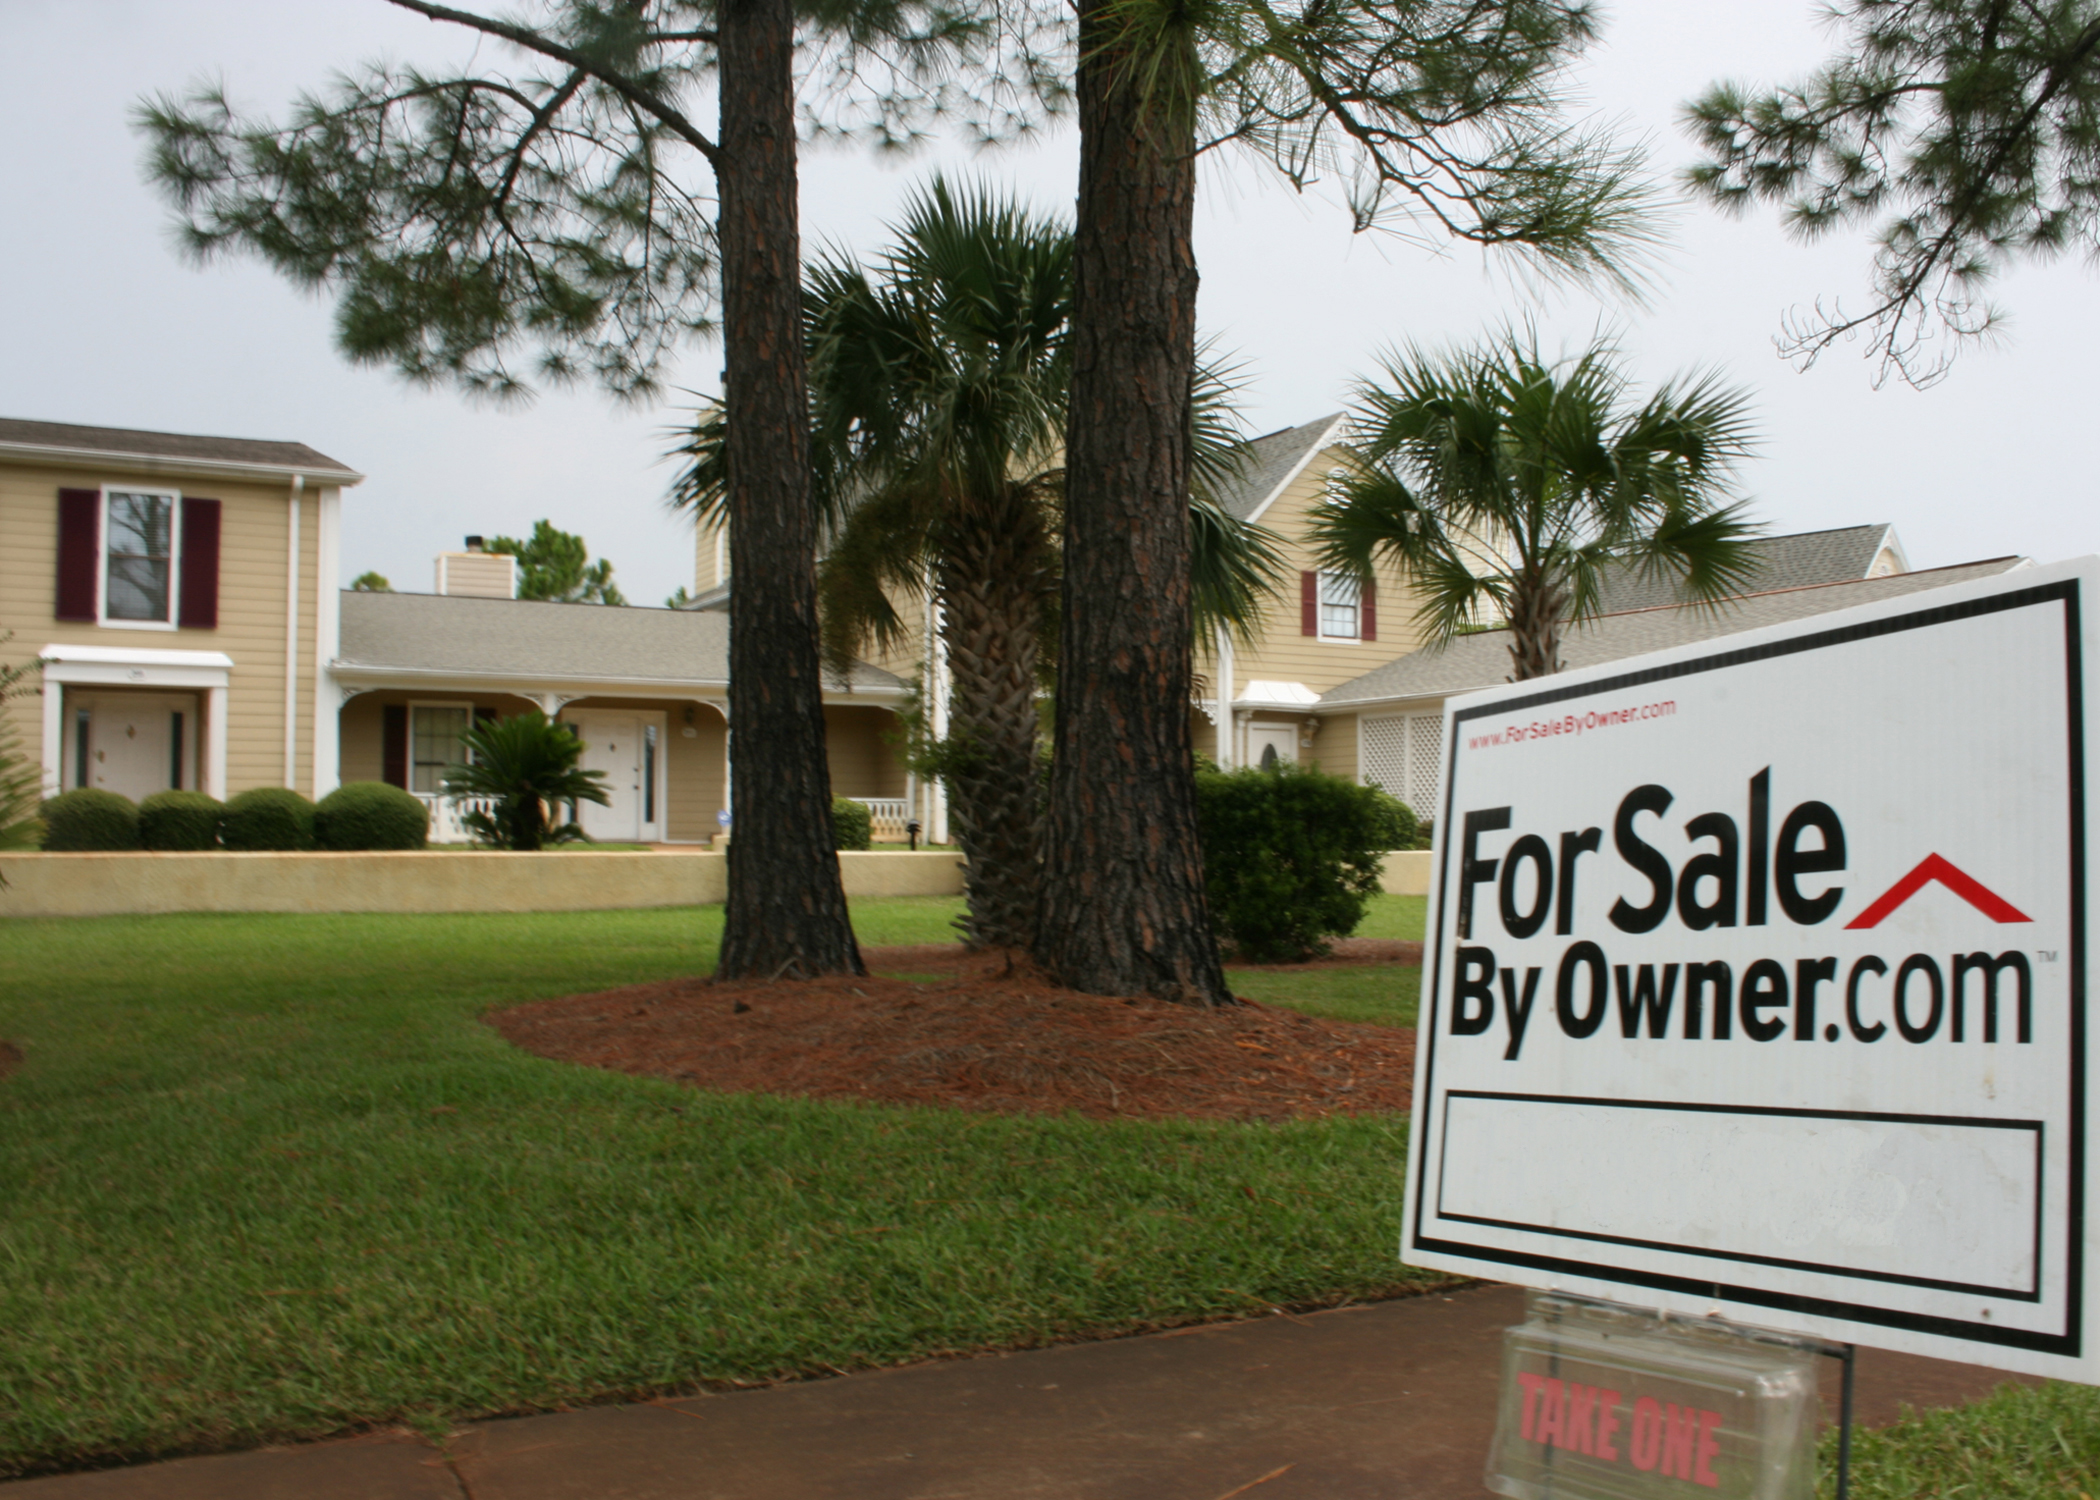 Why aren't more homeowners becoming sellers?